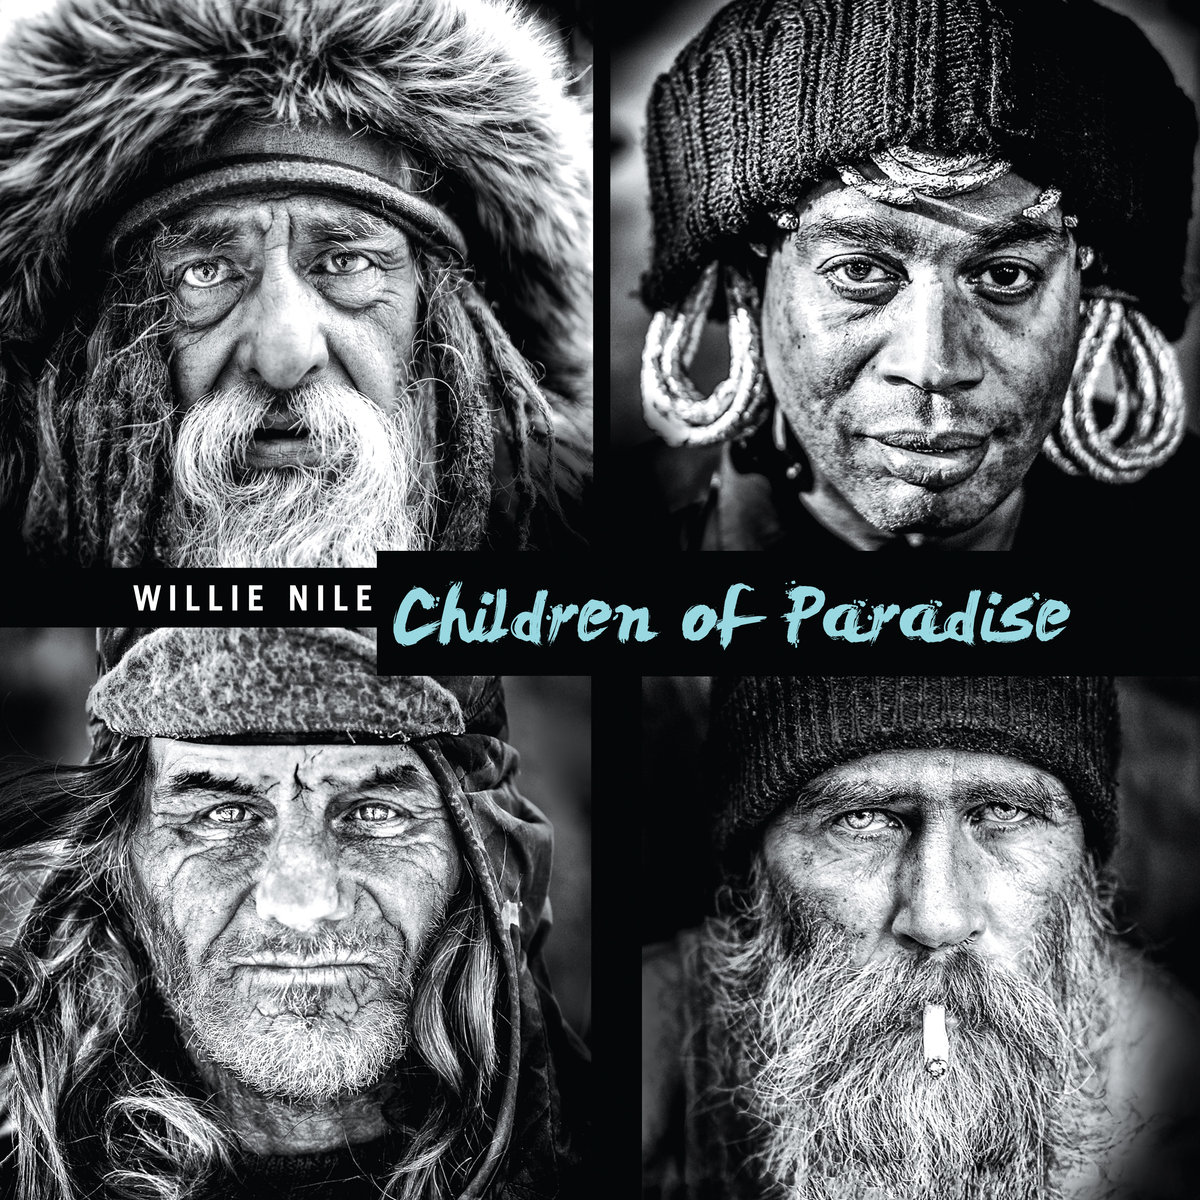 Willie Nile, Children of Paradise - cover art